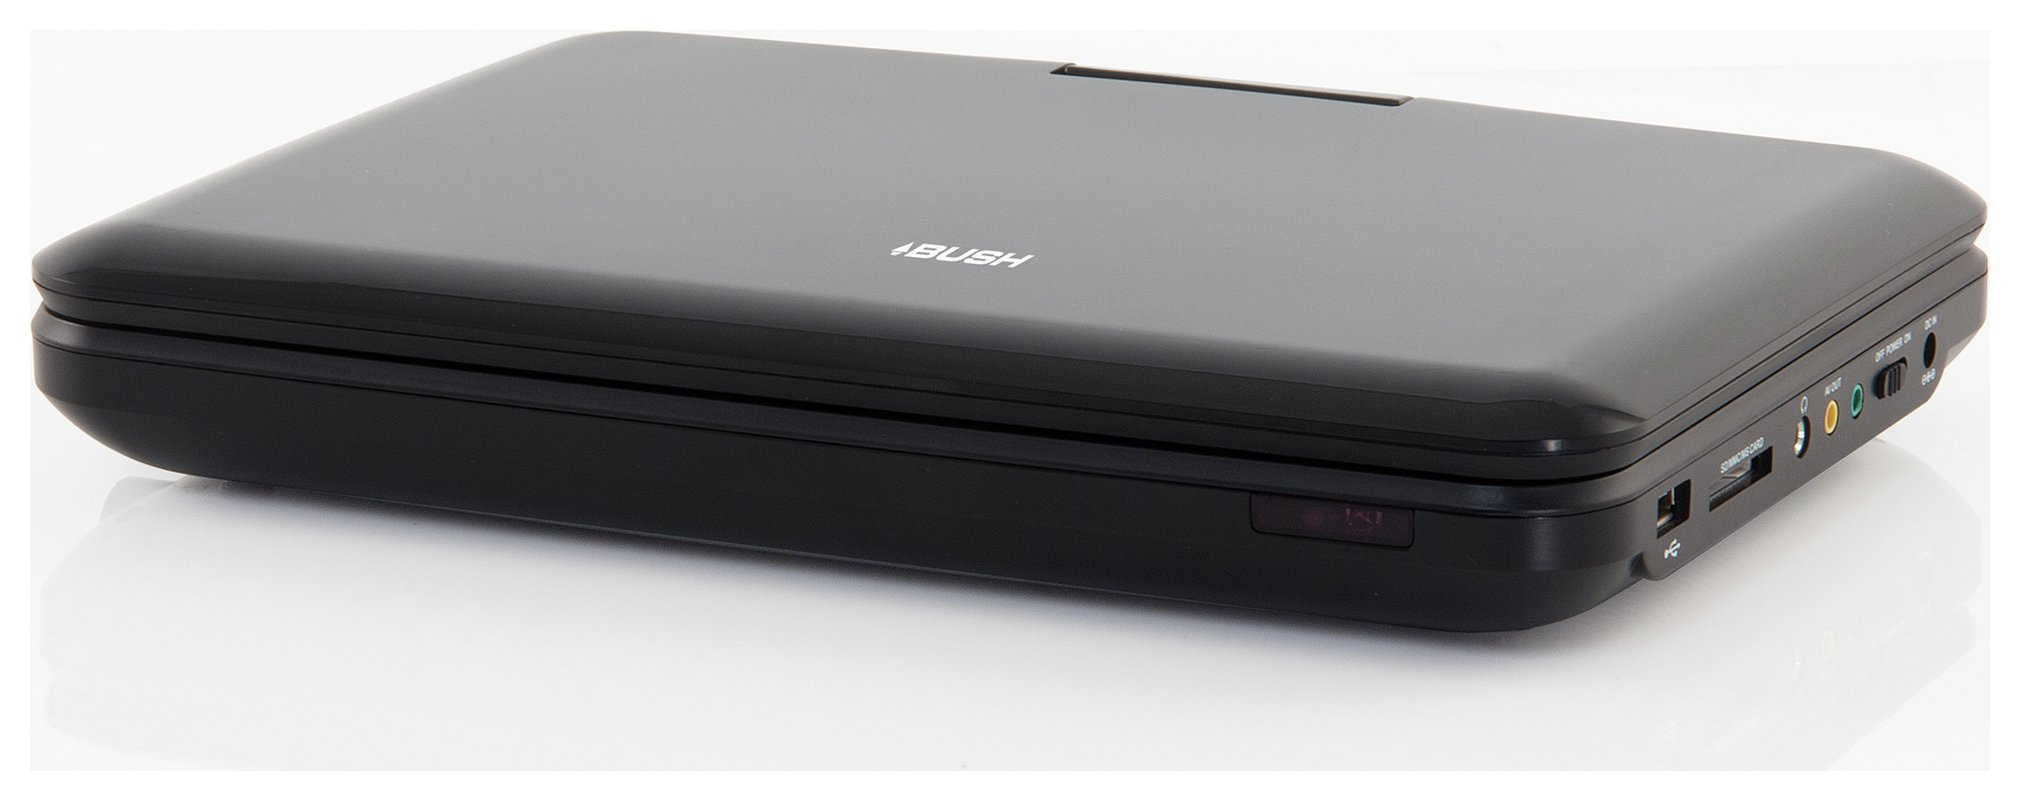 Image of Bush 10 Inch Portable DVD Player - Black